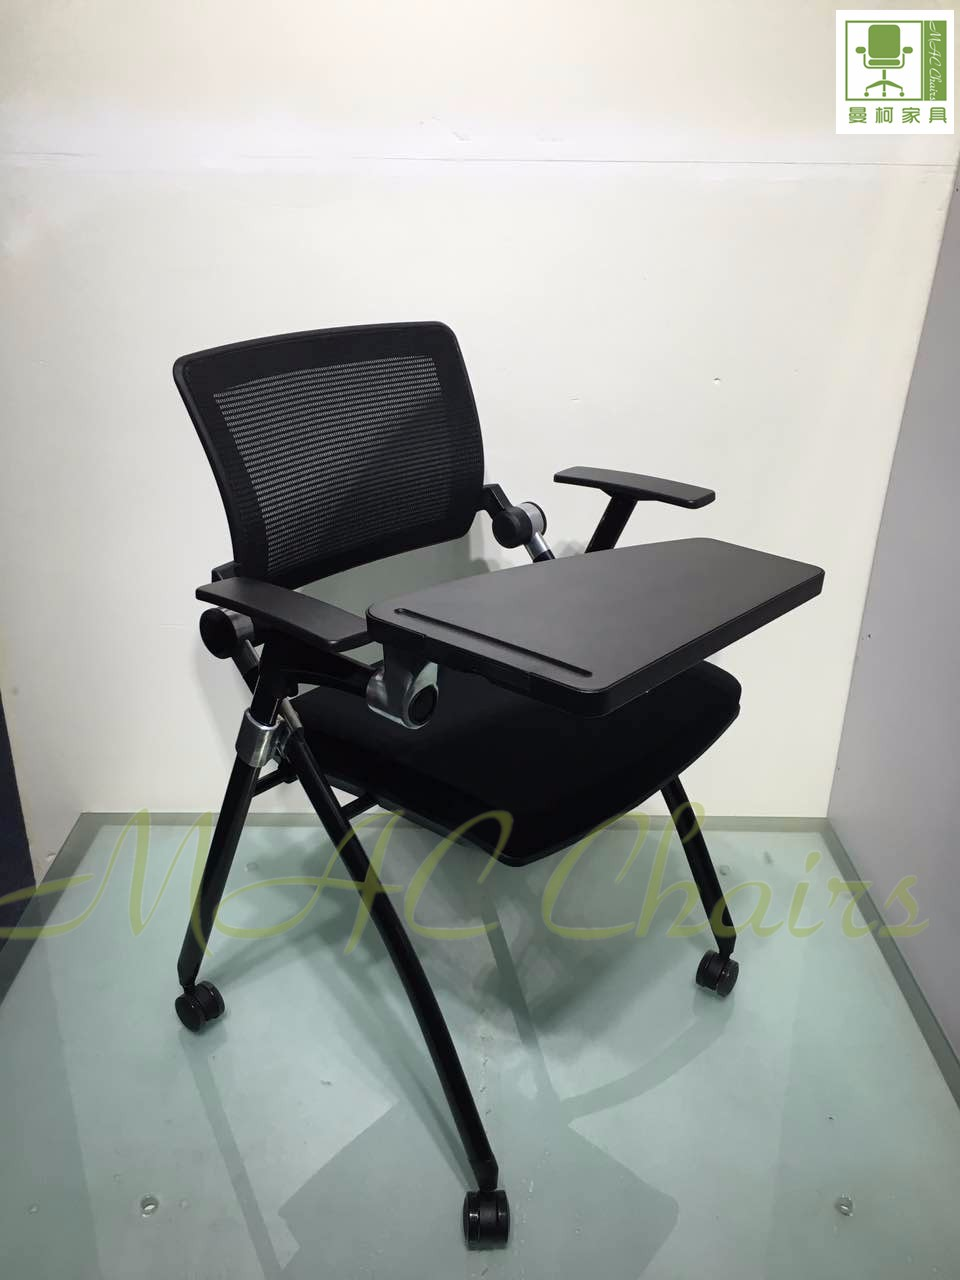 Fabulous Folding Student Chair With Wheel Conference Chair With Writing Pad Buy Folding Student Chair Folding Chair With Wheel Folding Chair With Tablet Unemploymentrelief Wooden Chair Designs For Living Room Unemploymentrelieforg